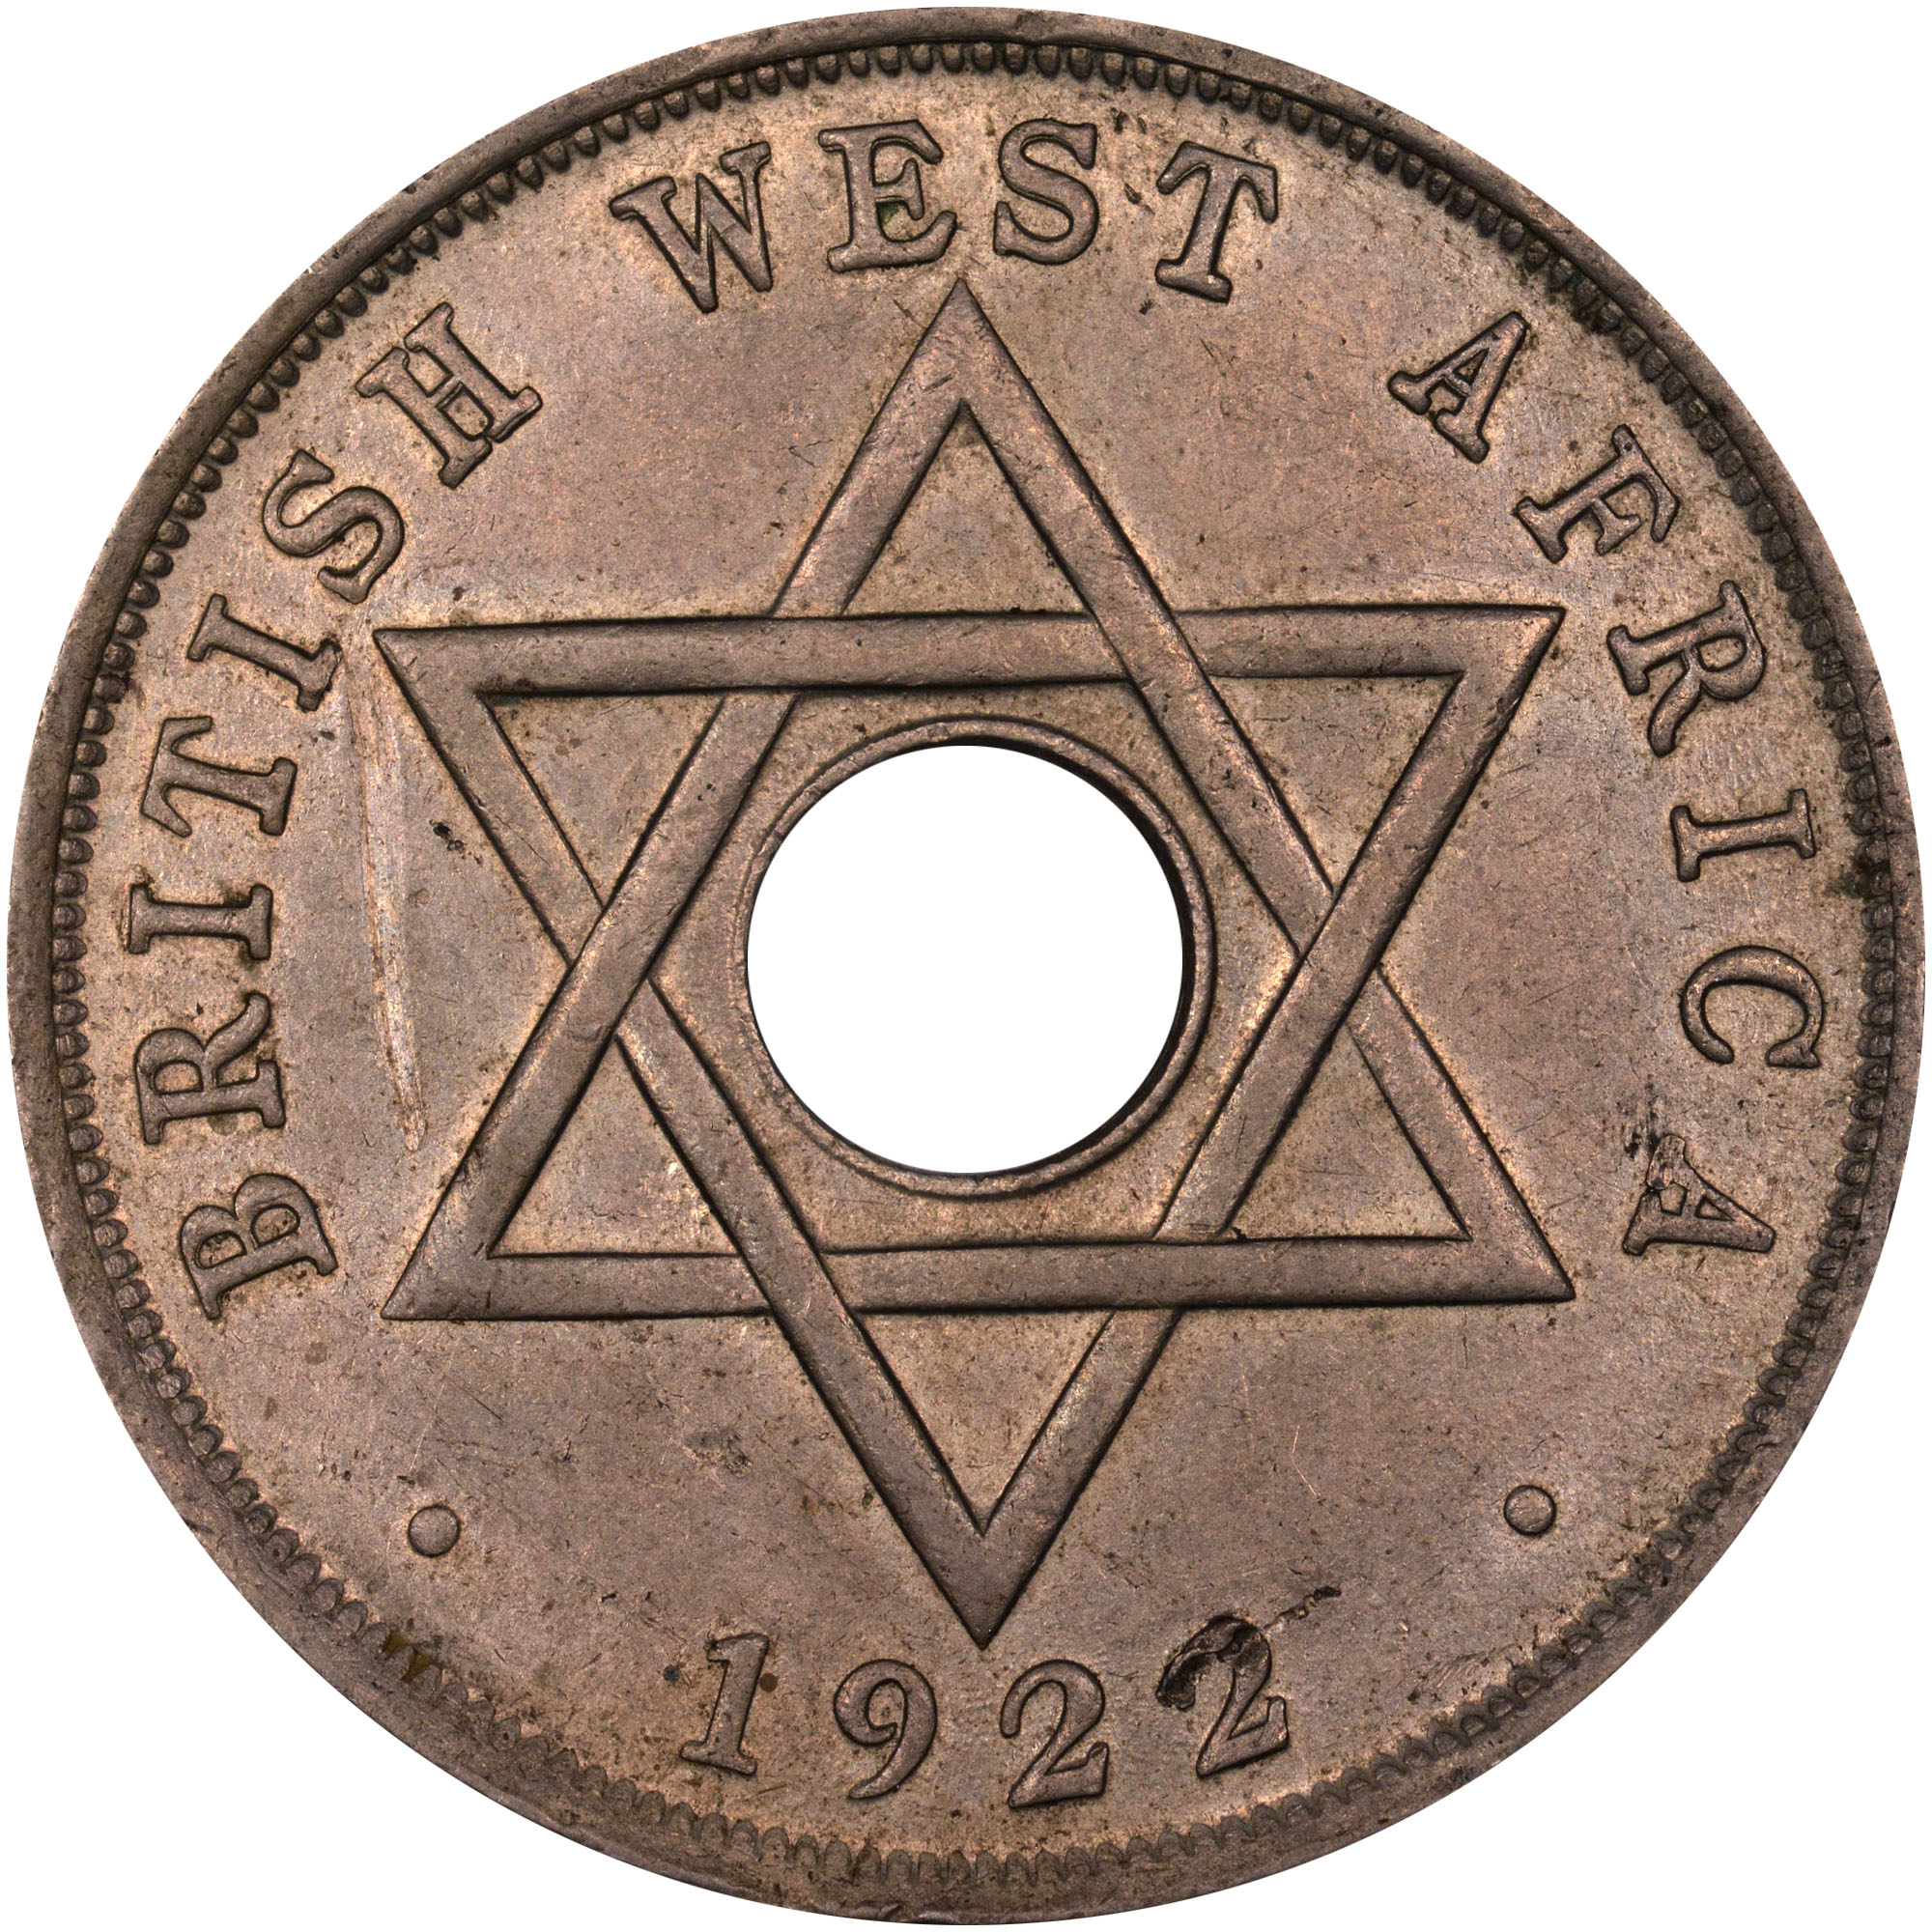 1912-1936 British West Africa Penny reverse